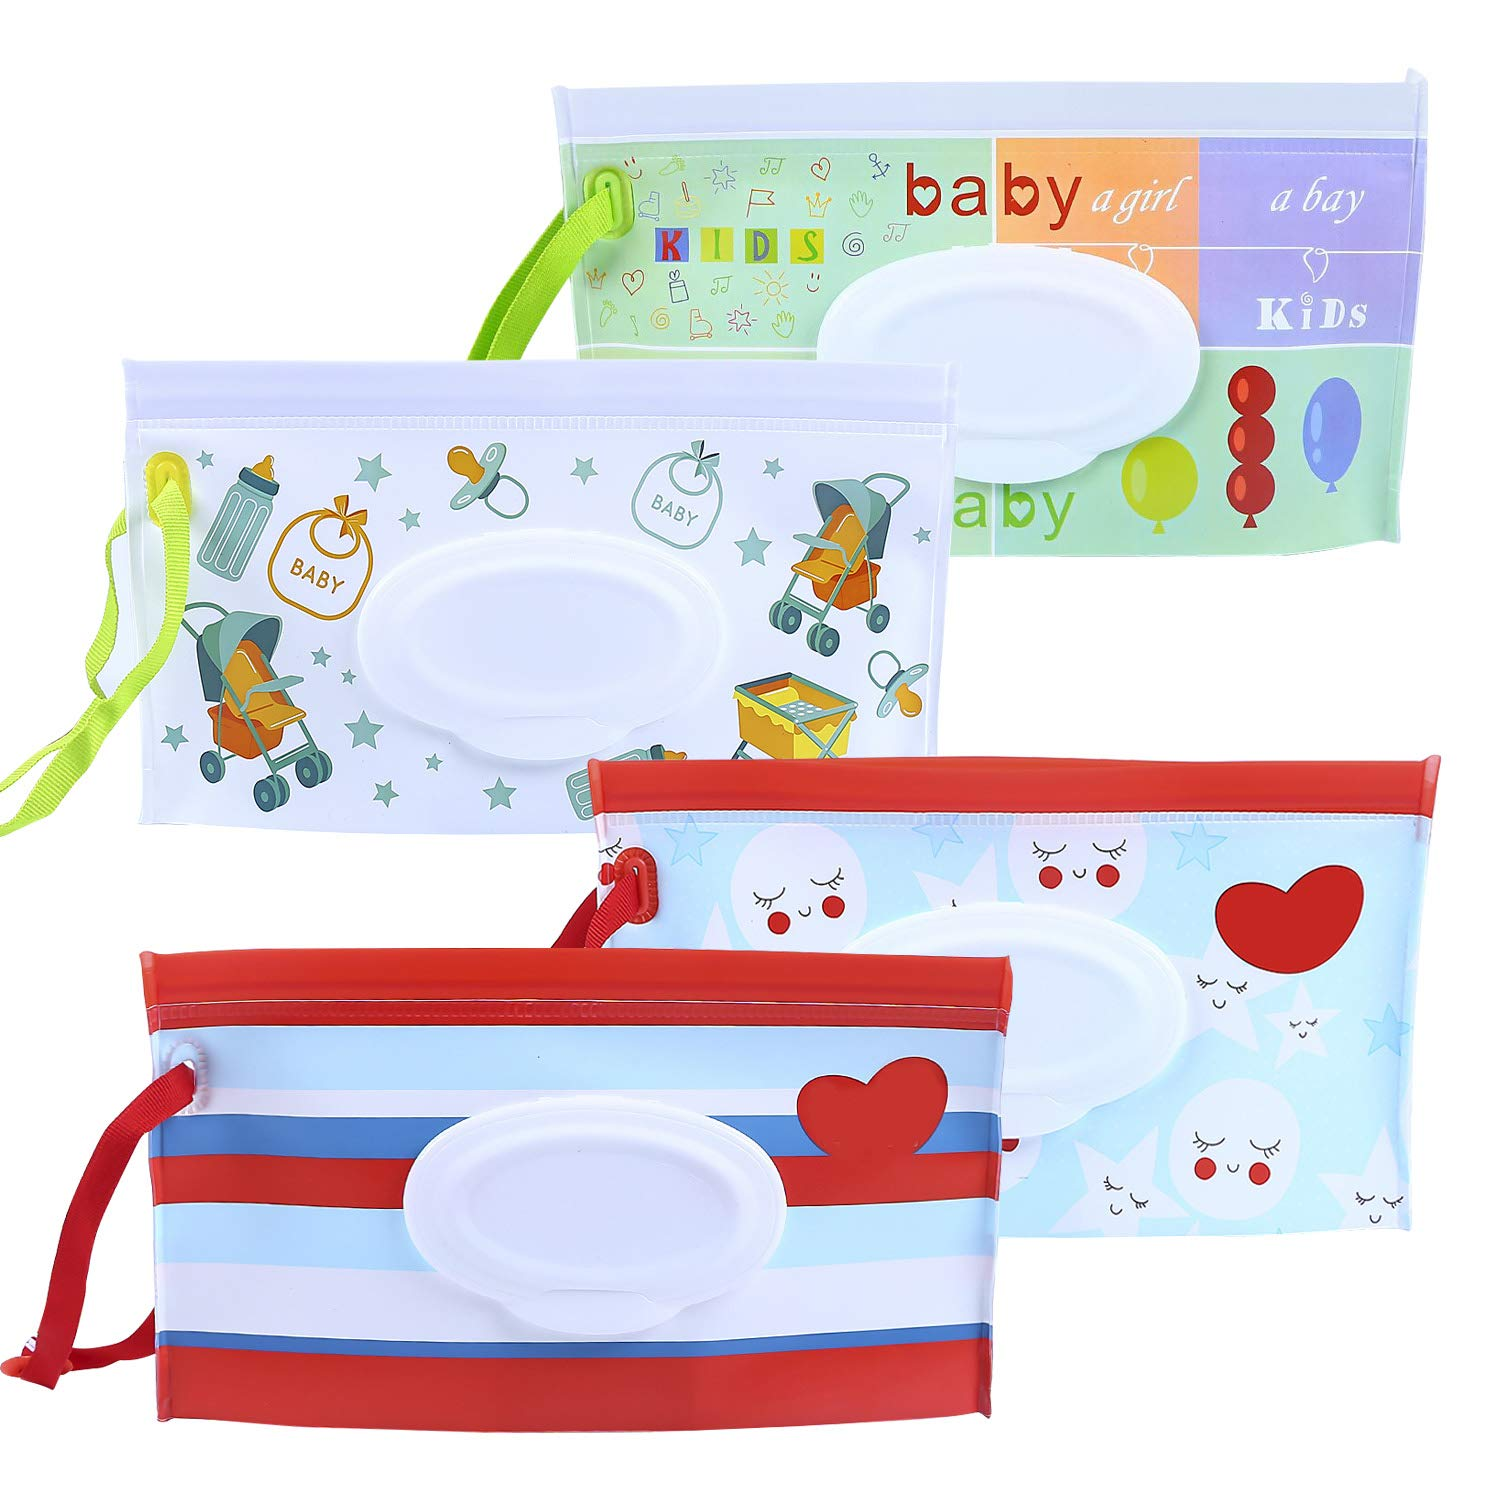 Meetory Reusable Baby Wet Wipe Pouch, Portable Travel Wipes Case Dispenser for Baby or Personal Wipes, Eco Friendly Wet Wipe Box (4 Pack)